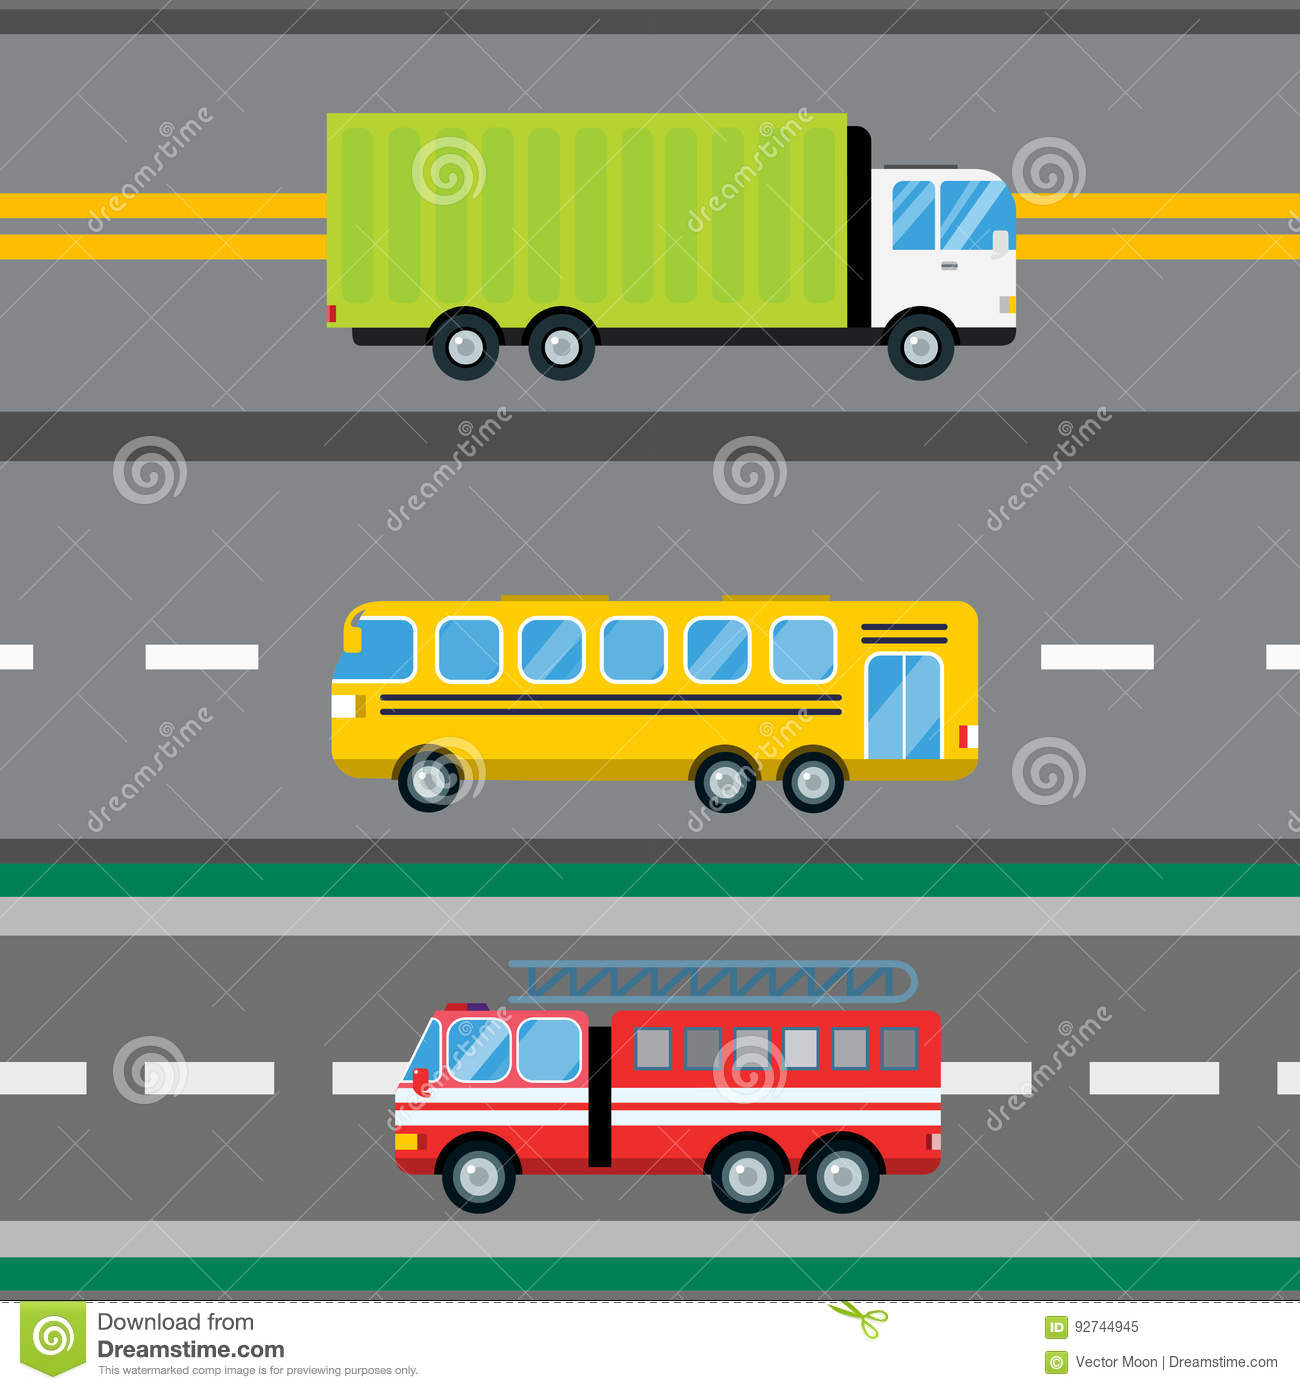 Fire truck car cartoon delivery transport cargo bus logistic seamless pattern vector illustration.